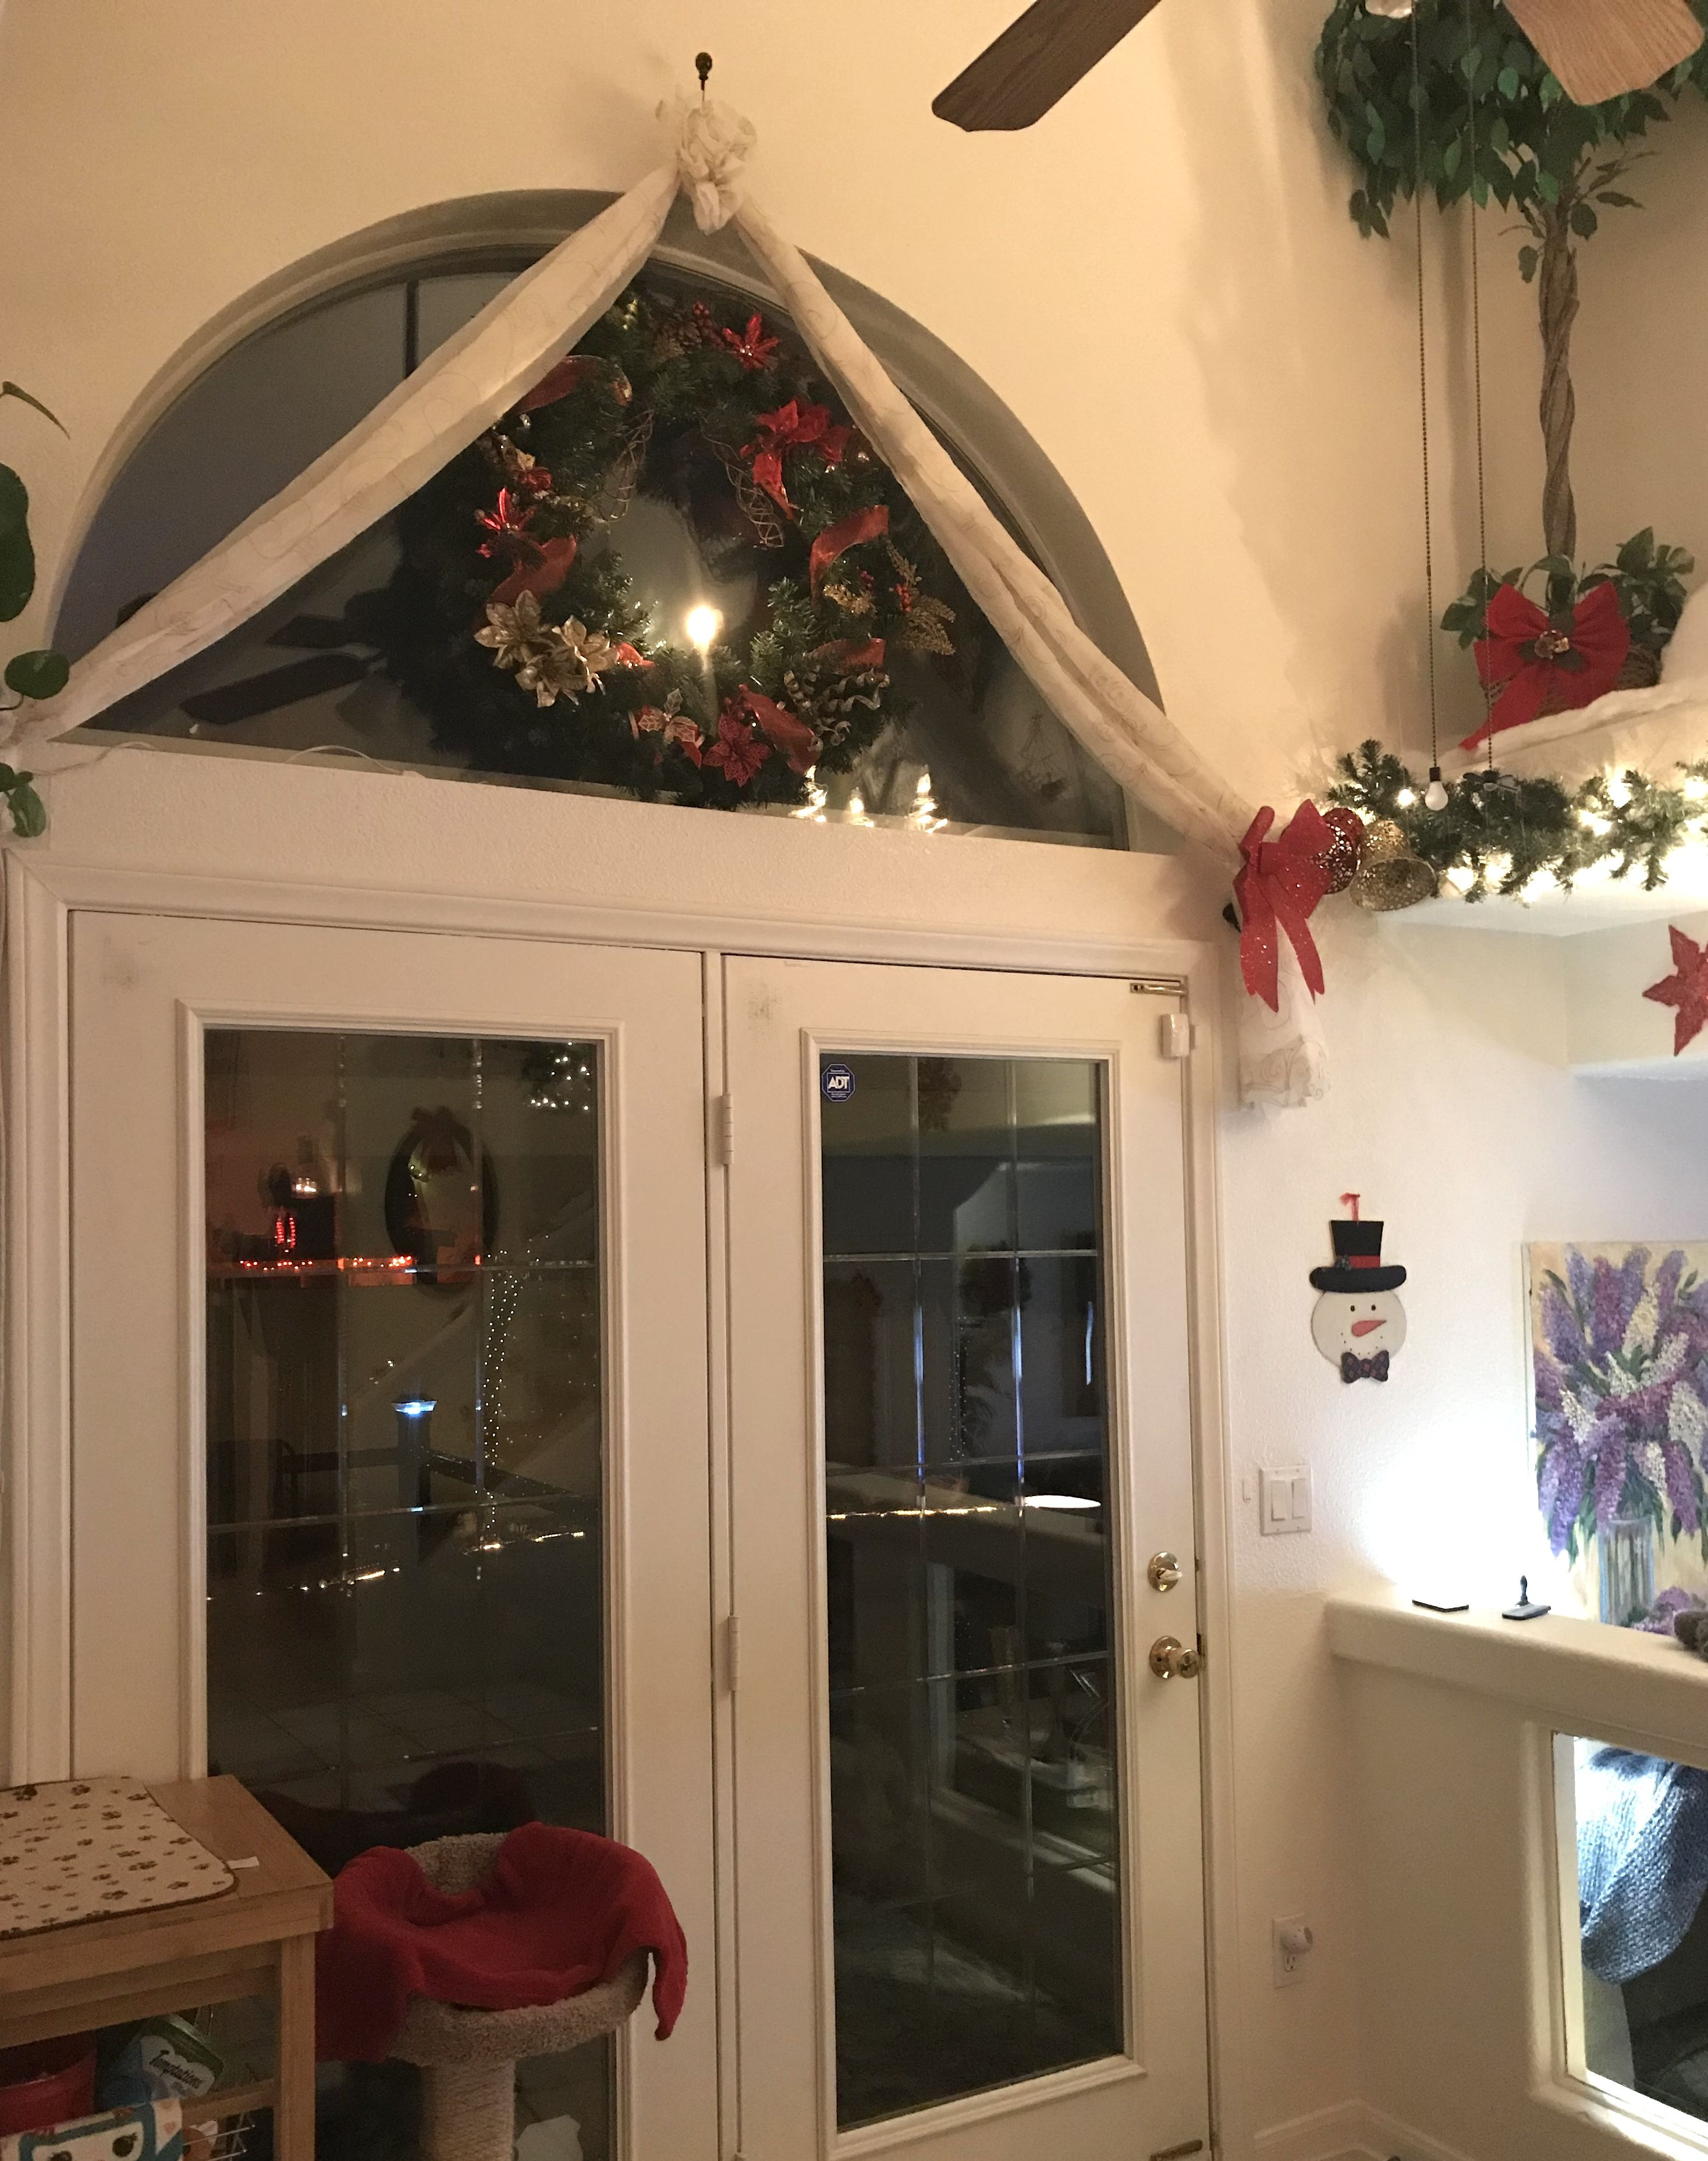 CHRISTMAS WREATH CURTAINS FRENCH DOORS